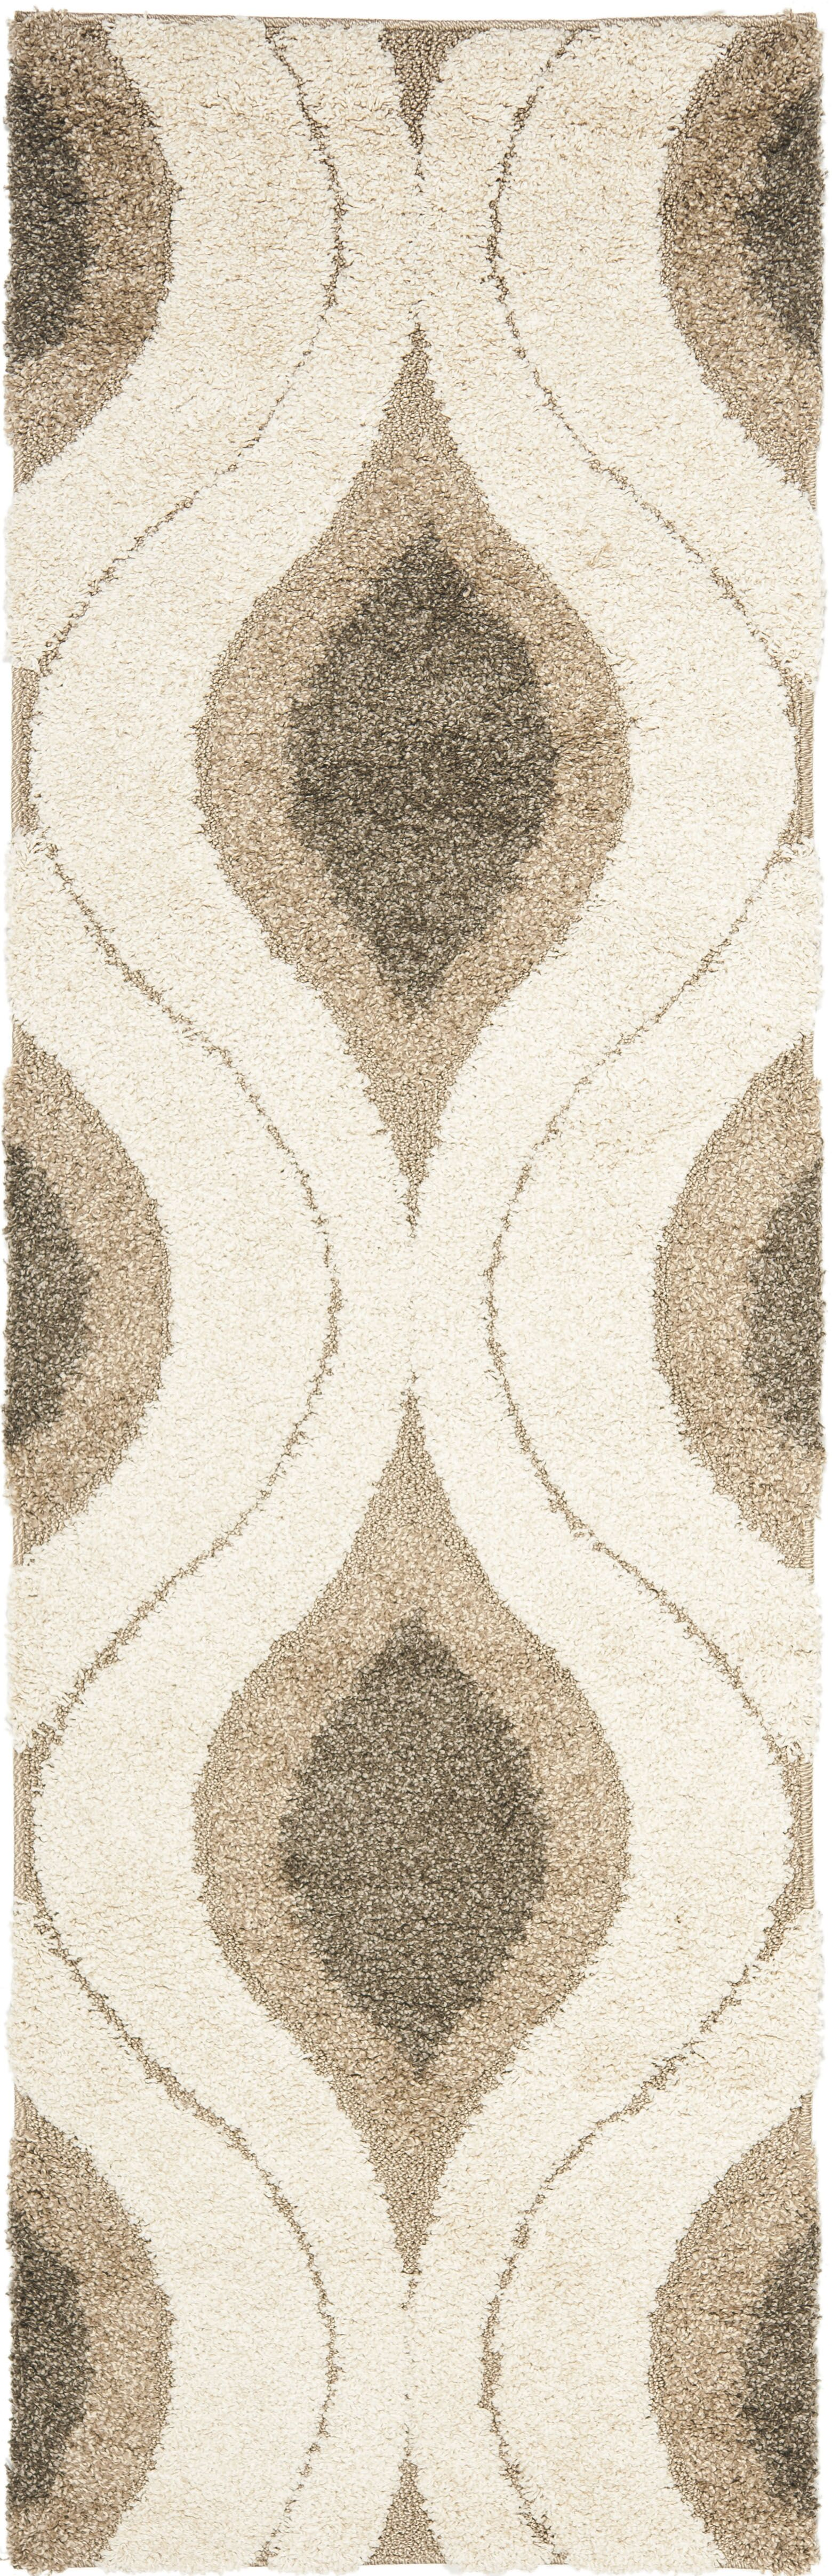 Fulton Cream/Smoke Shag Area Rug Rug Size: Runner 2'3